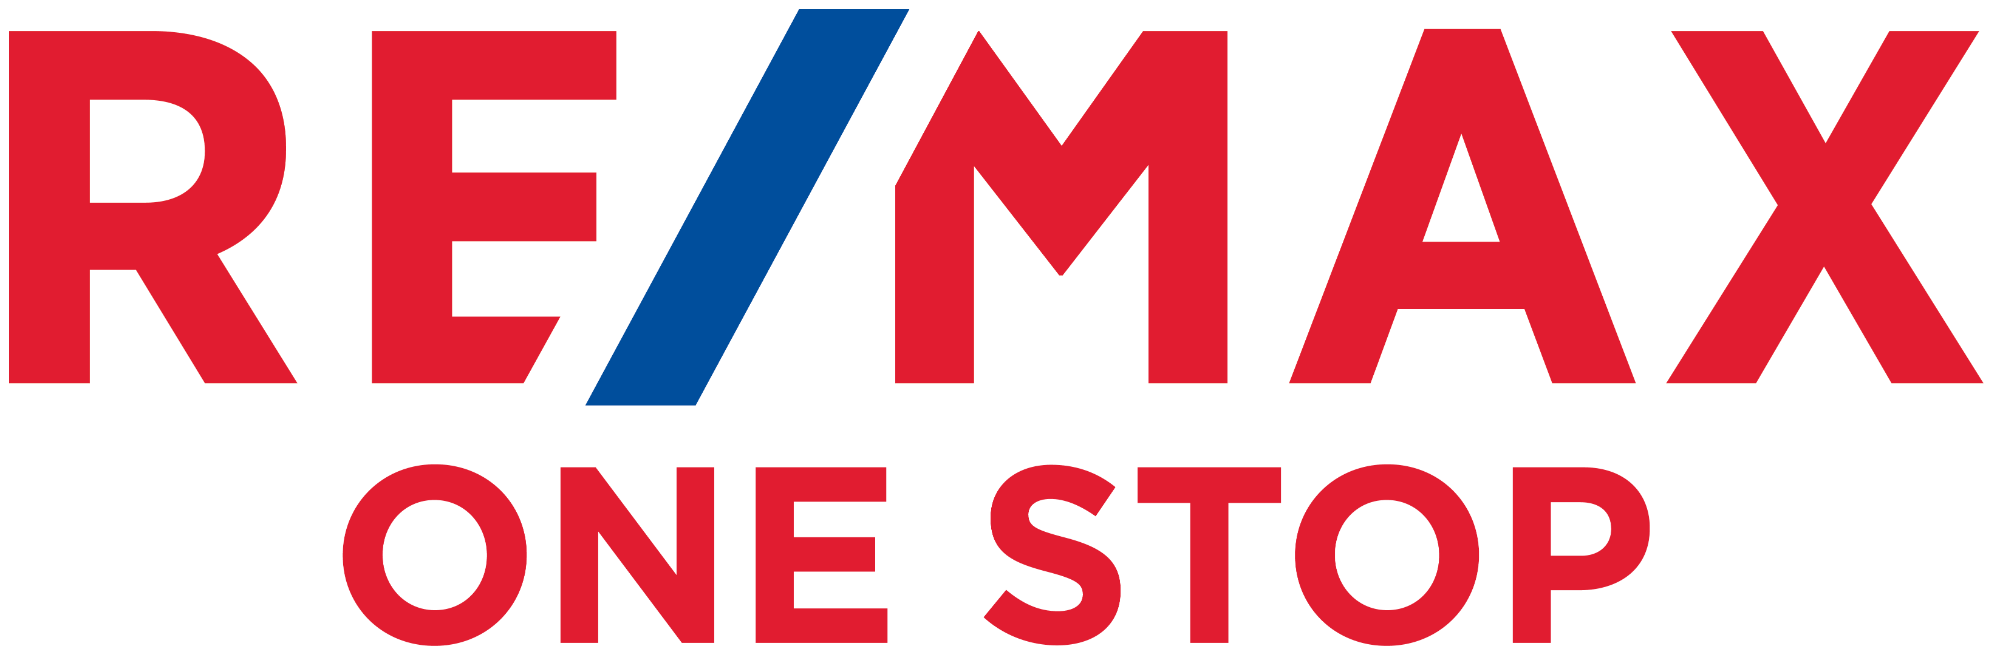 ReMax - Johns Creek - One Stop Logo -  Red